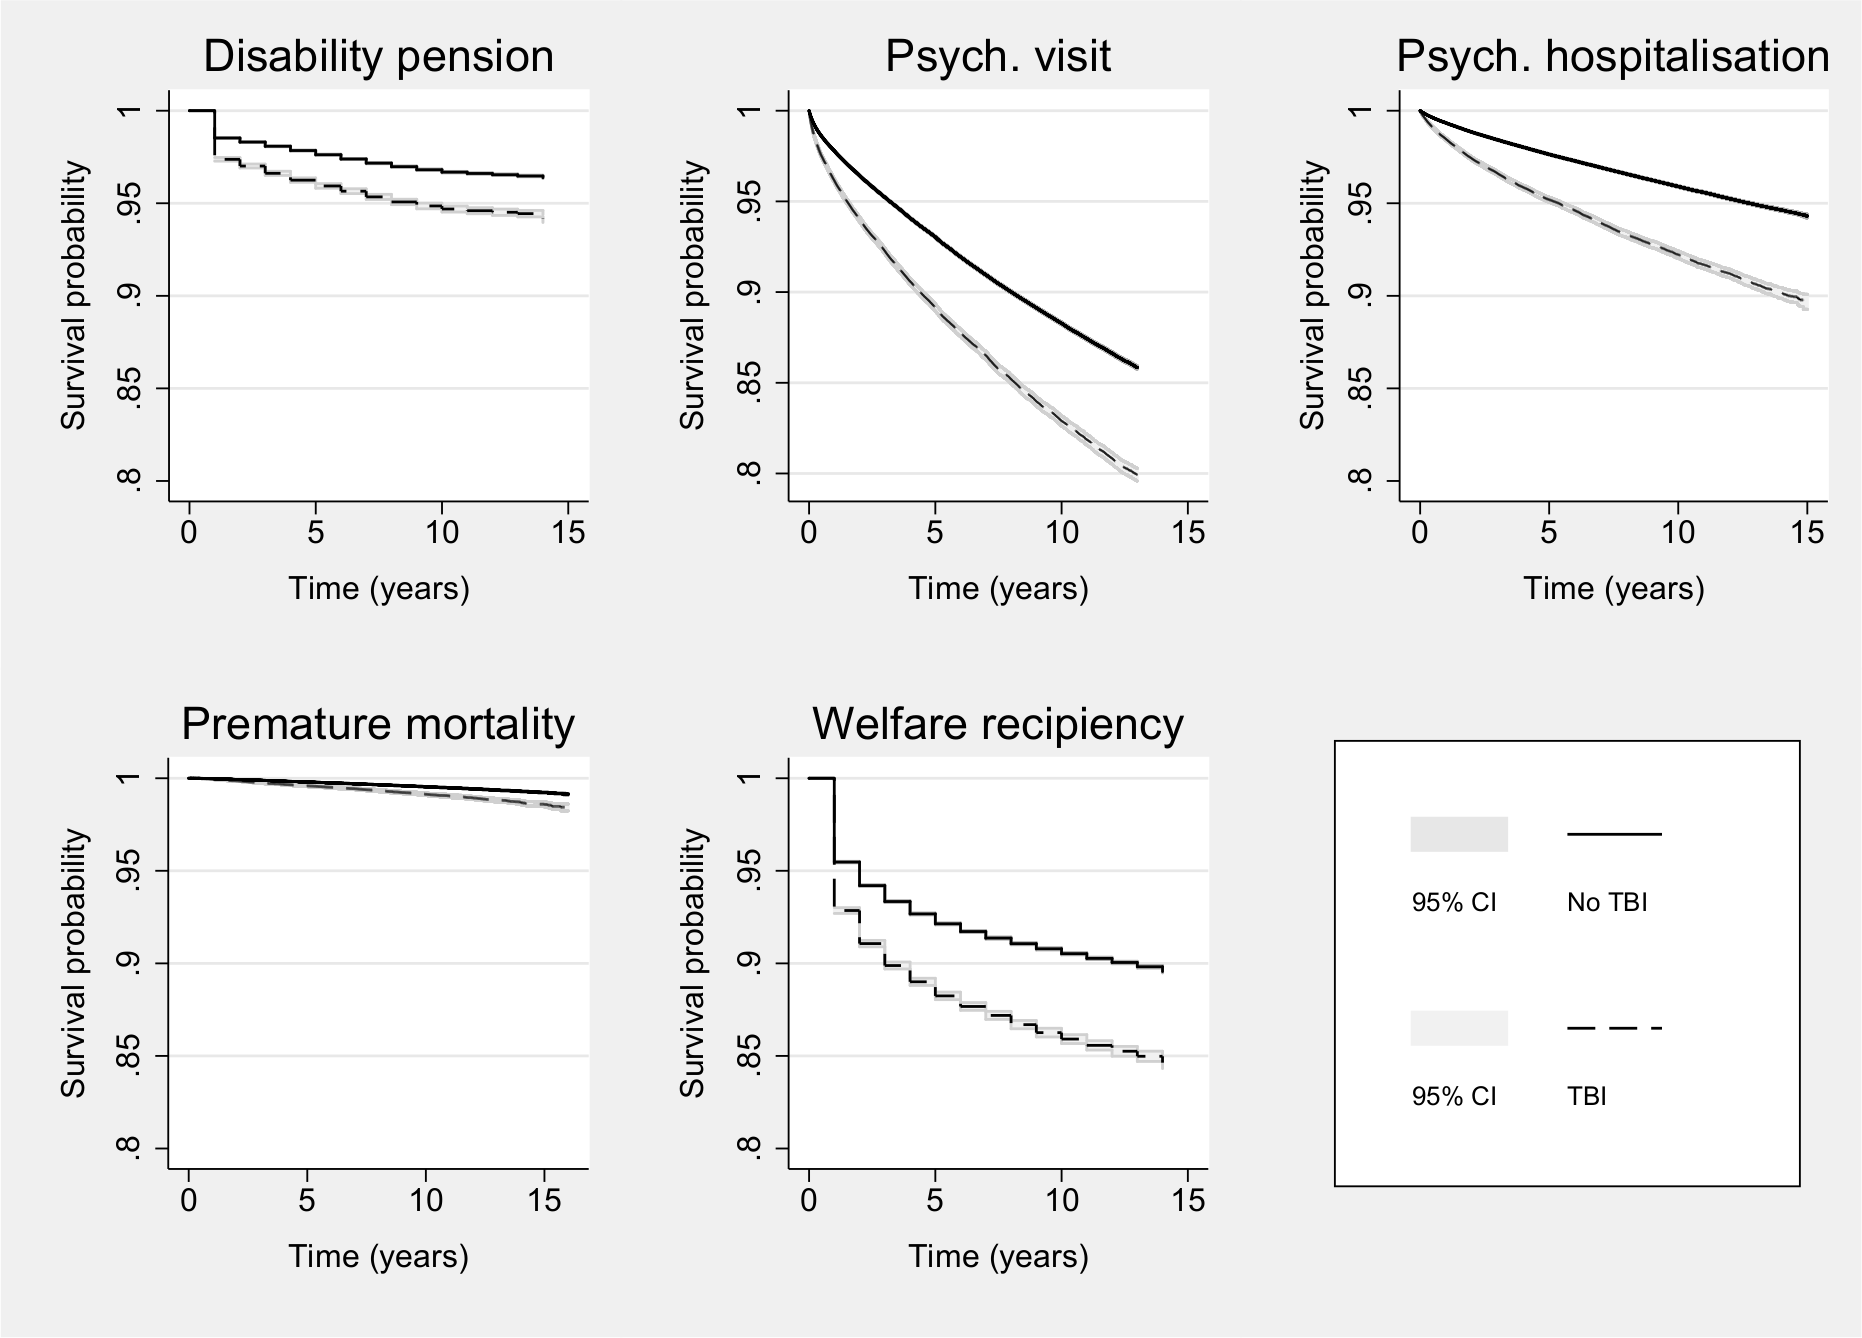 Kaplan-Meier survival curves for all right-censored outcomes across TBI exposure before age 25 y.